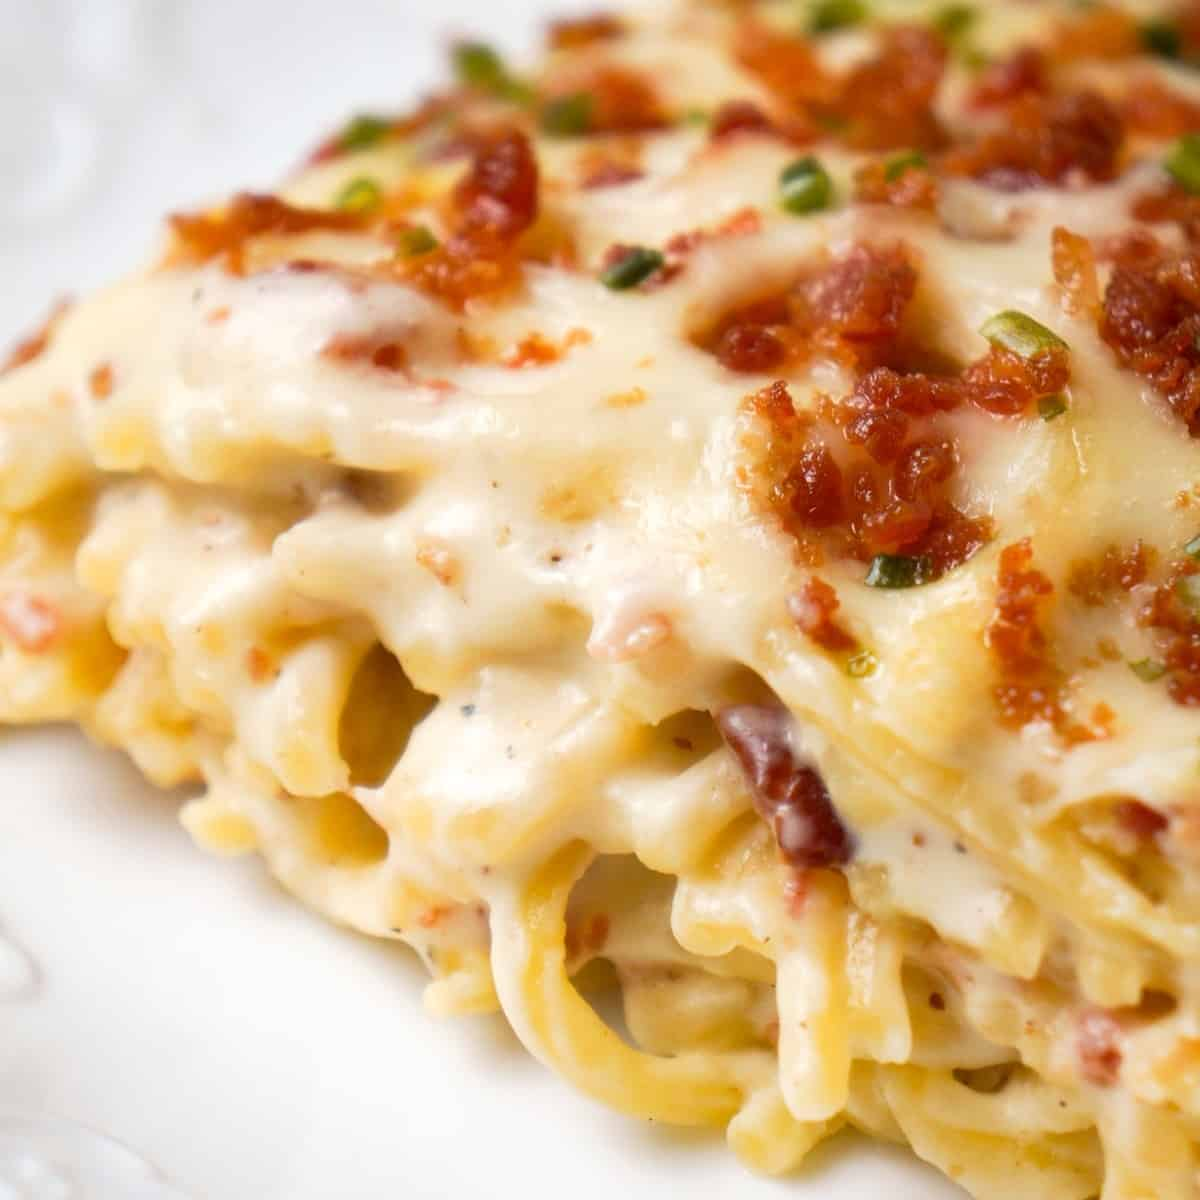 Bacon Cream Cheese Baked Spaghetti is a delicious pasta recipe loaded with crumbled bacon, Philadelphia Whipped Chive cream cheese and mozzarella cheese.